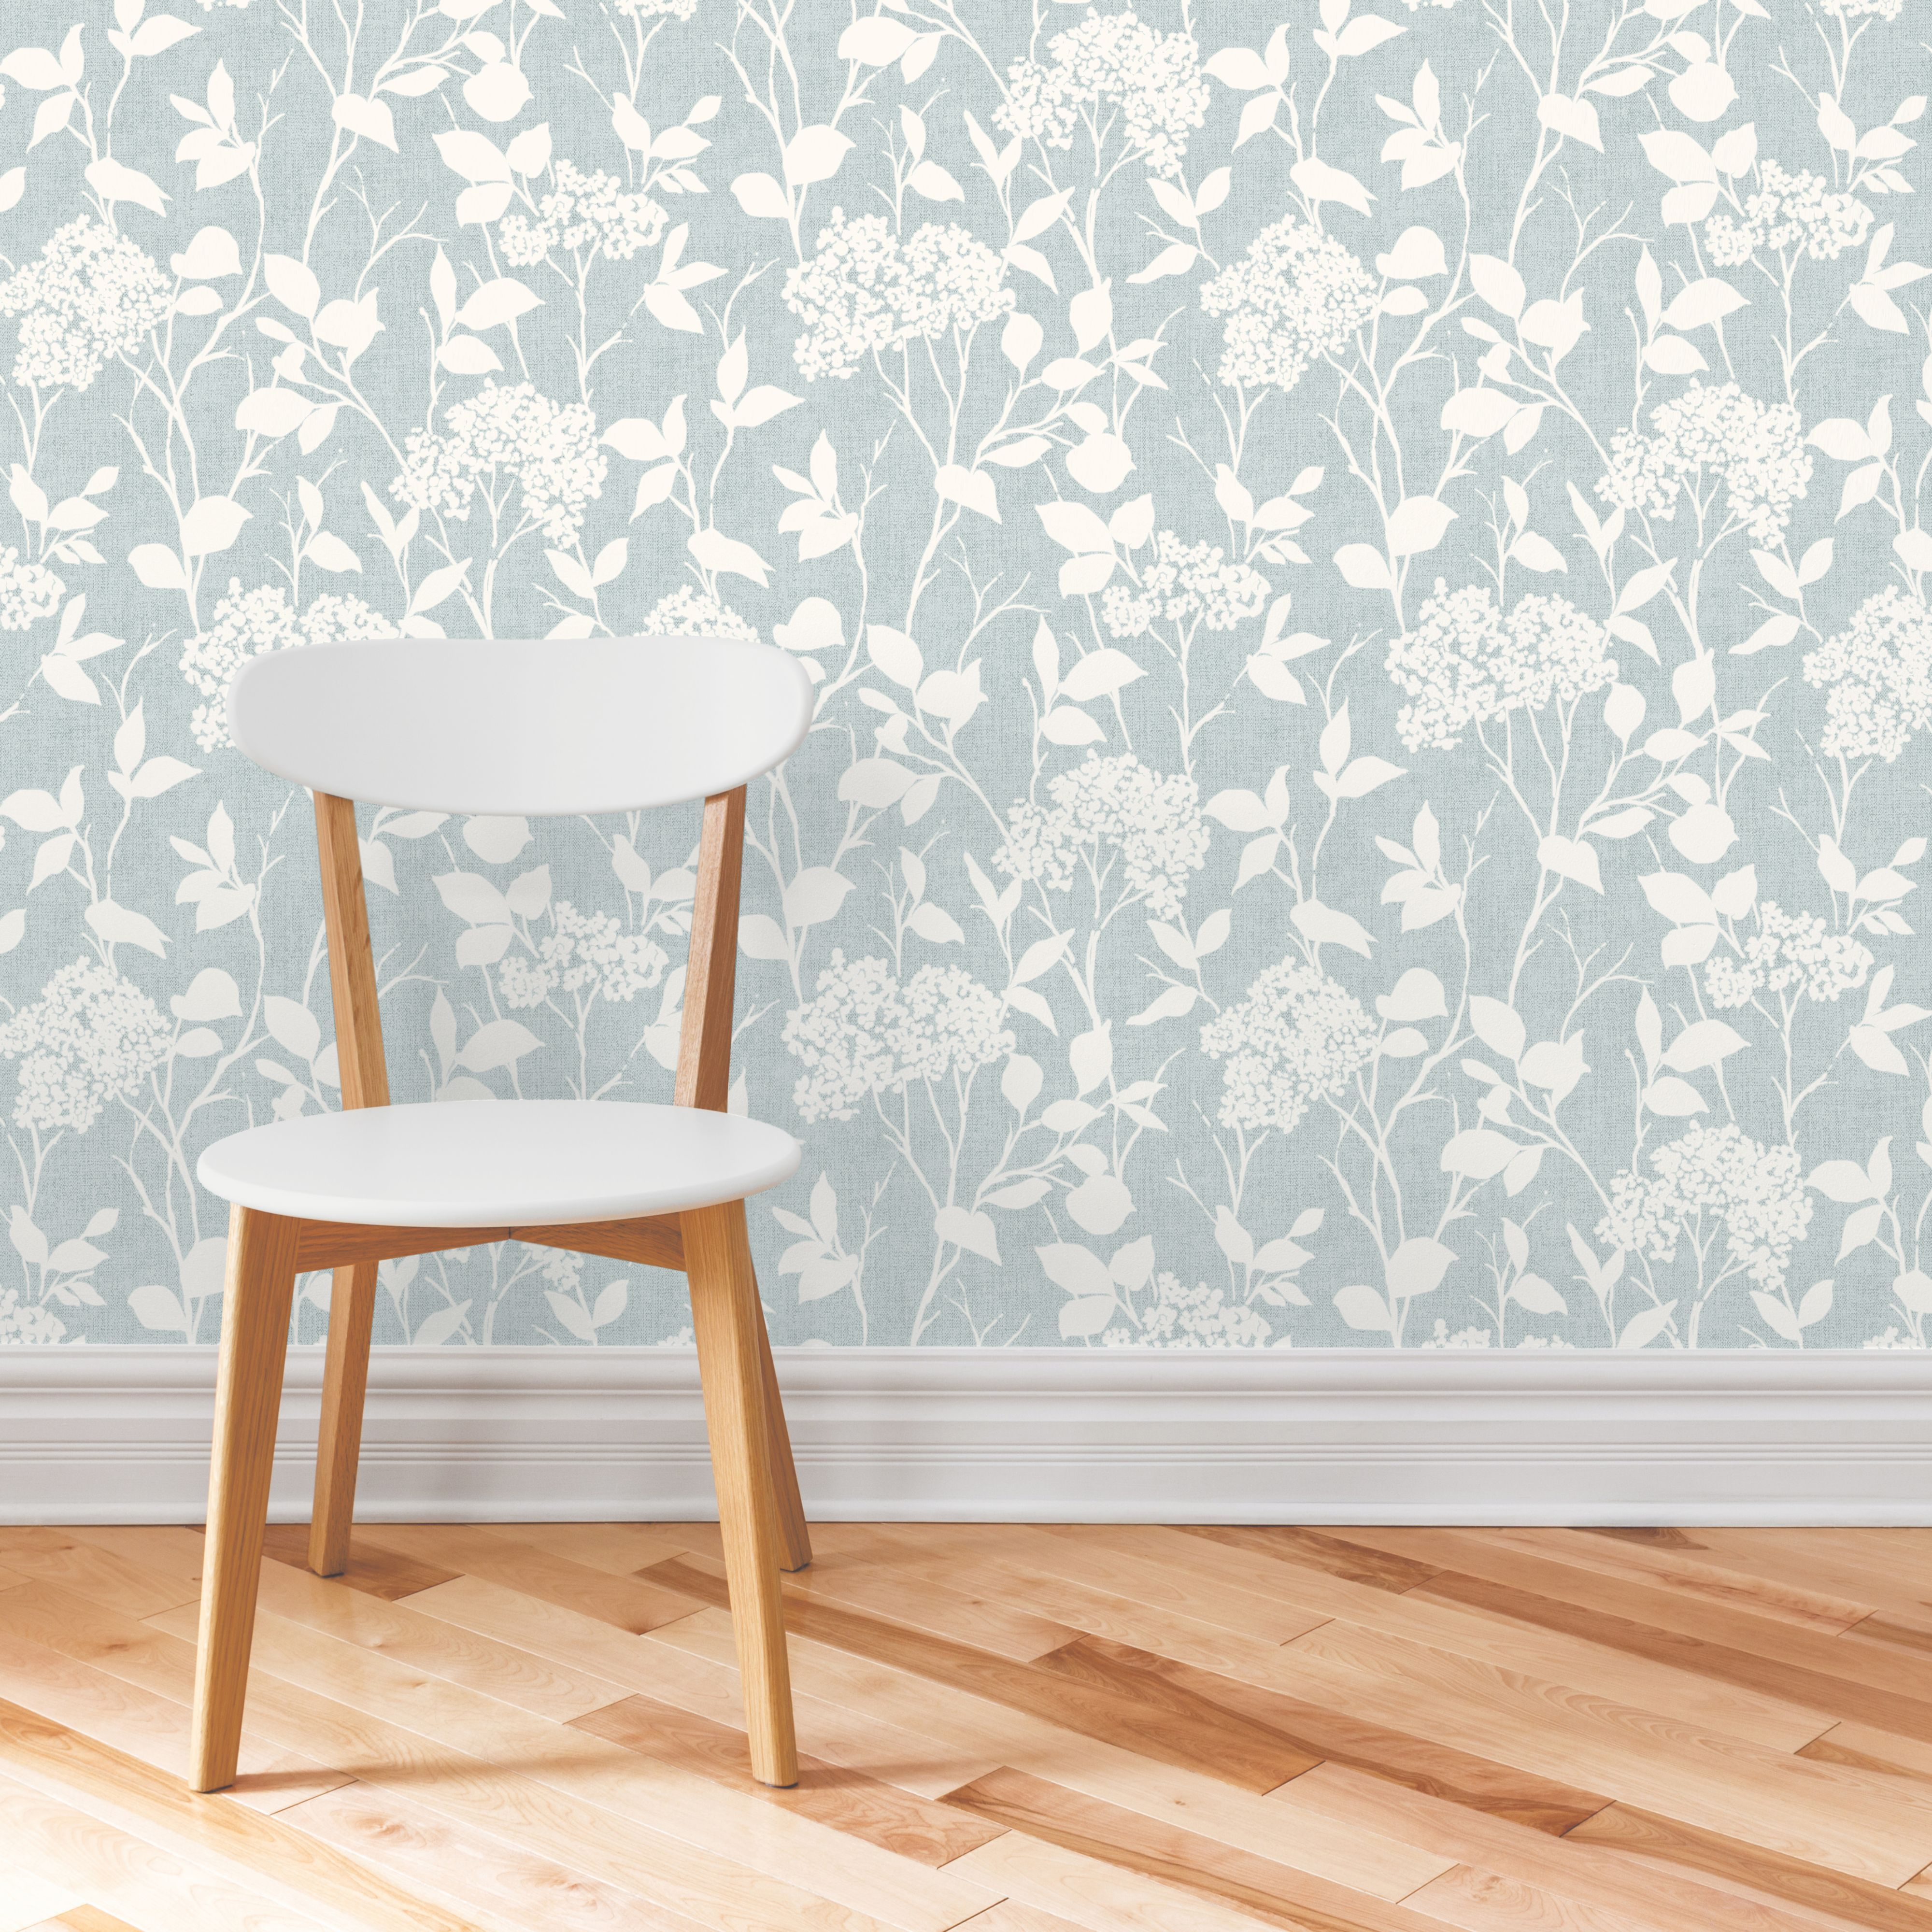 Blue Glenmara Mica Highlight Wallpaper B Q For All Your Home And Garden Supplies A Bathroom Wallpaper Trends Blue Wallpaper Living Room Wallpaper Living Room